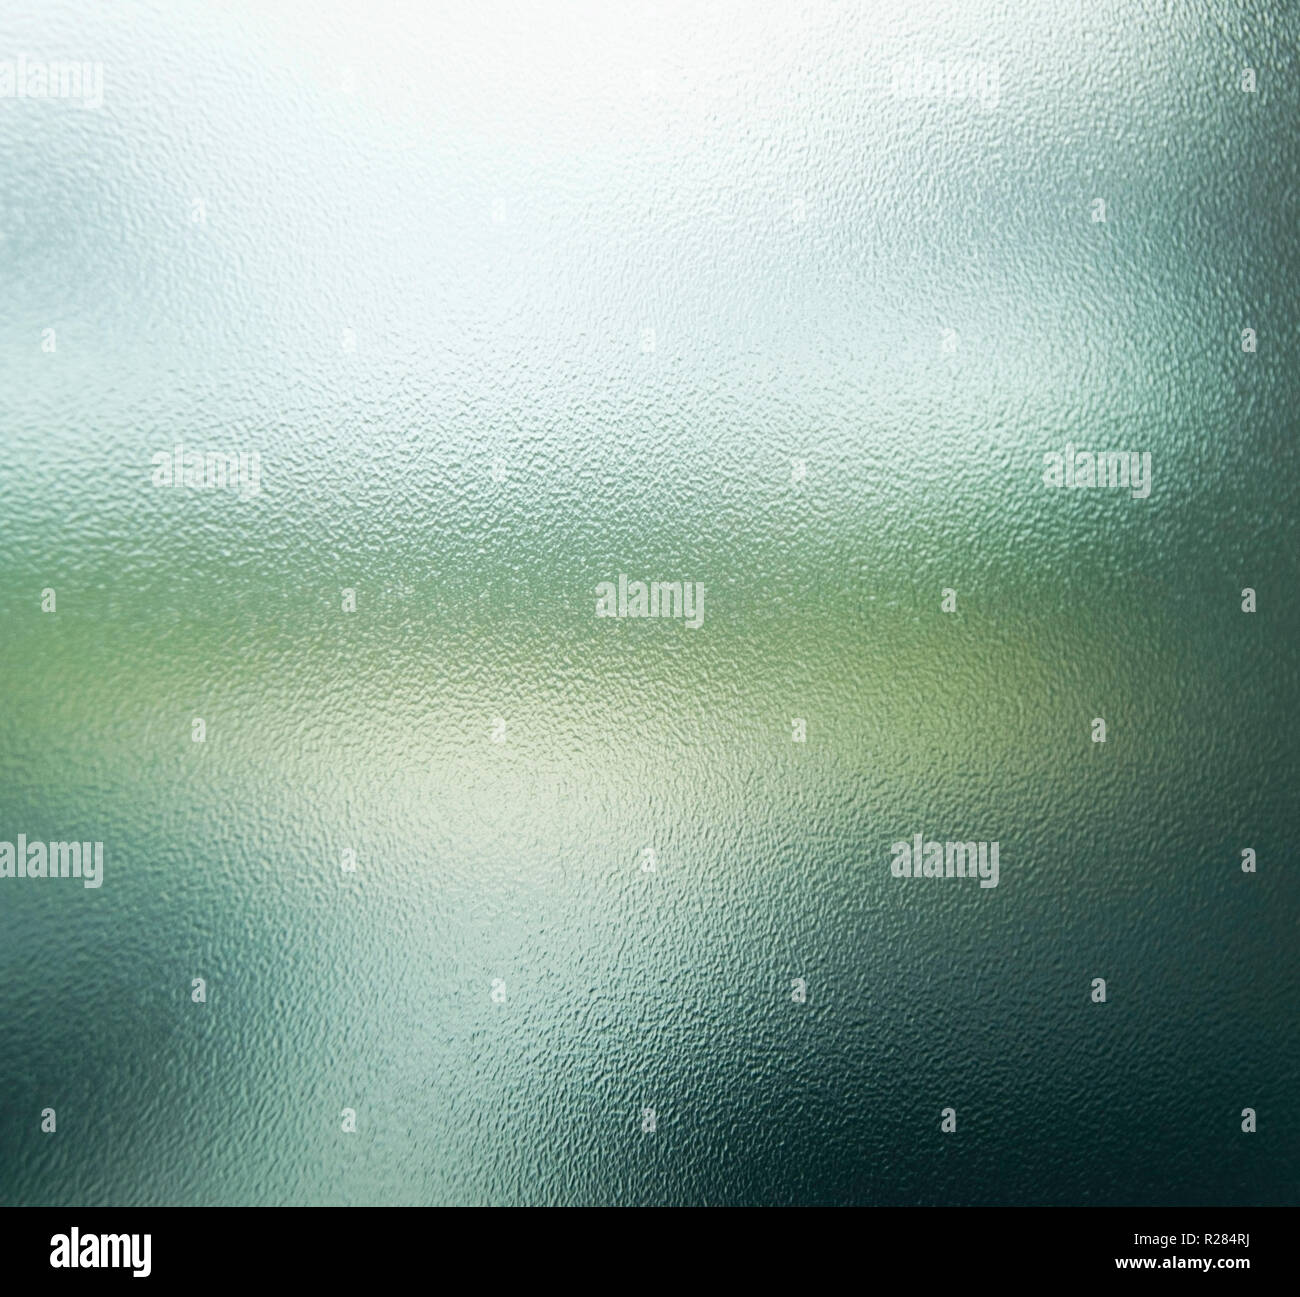 Opaque glass color texture glass background - Stock Image